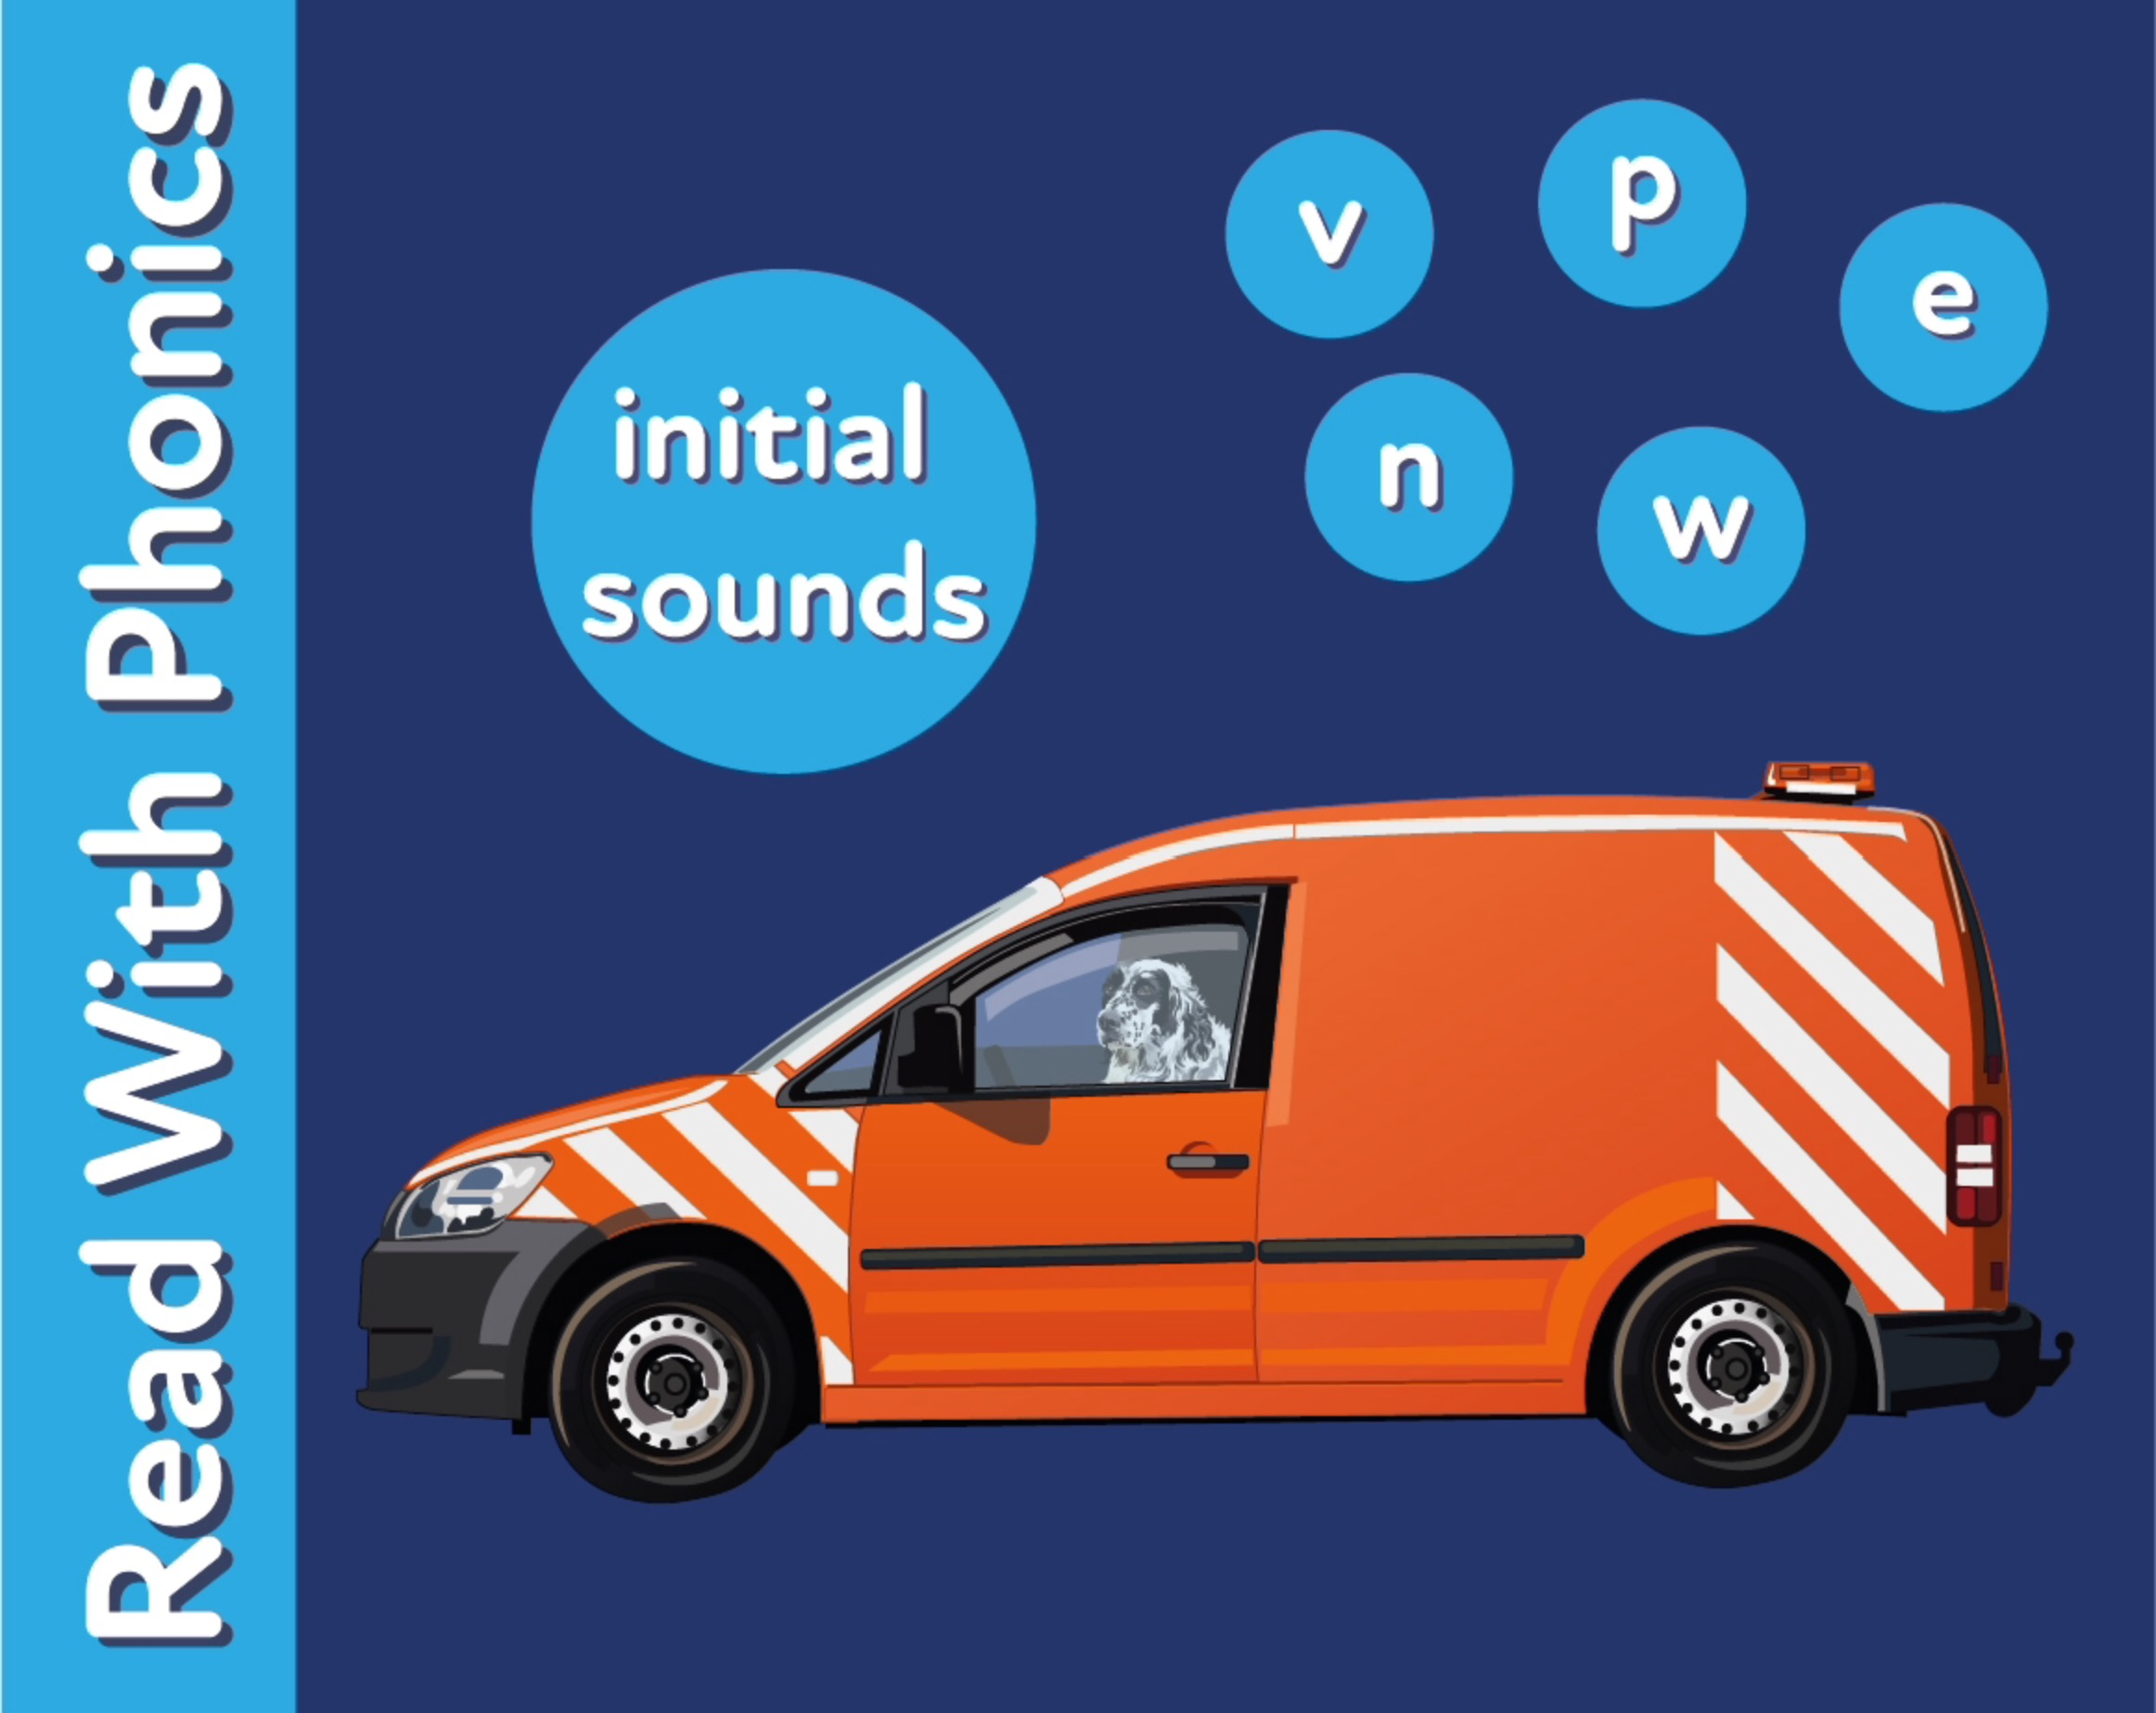 Learn The Initial Phonic Sounds 'v, n, p, w, e' (3 +)